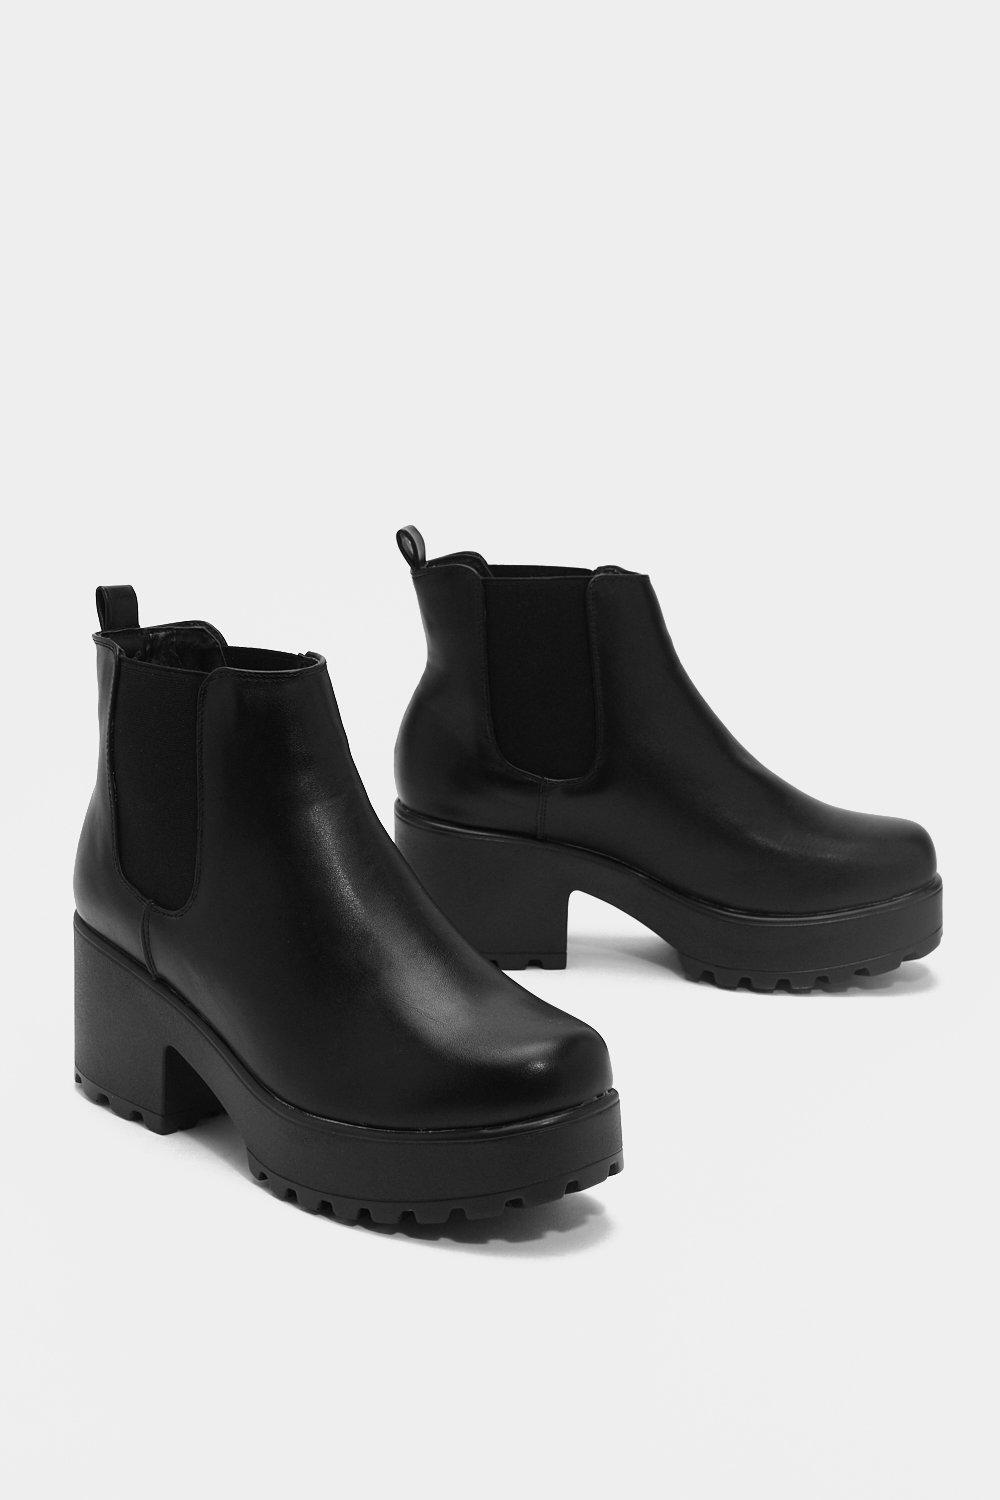 faeb6a079c8e7 Roll With It Platform Ankle Boot | Shop Clothes at Nasty Gal!